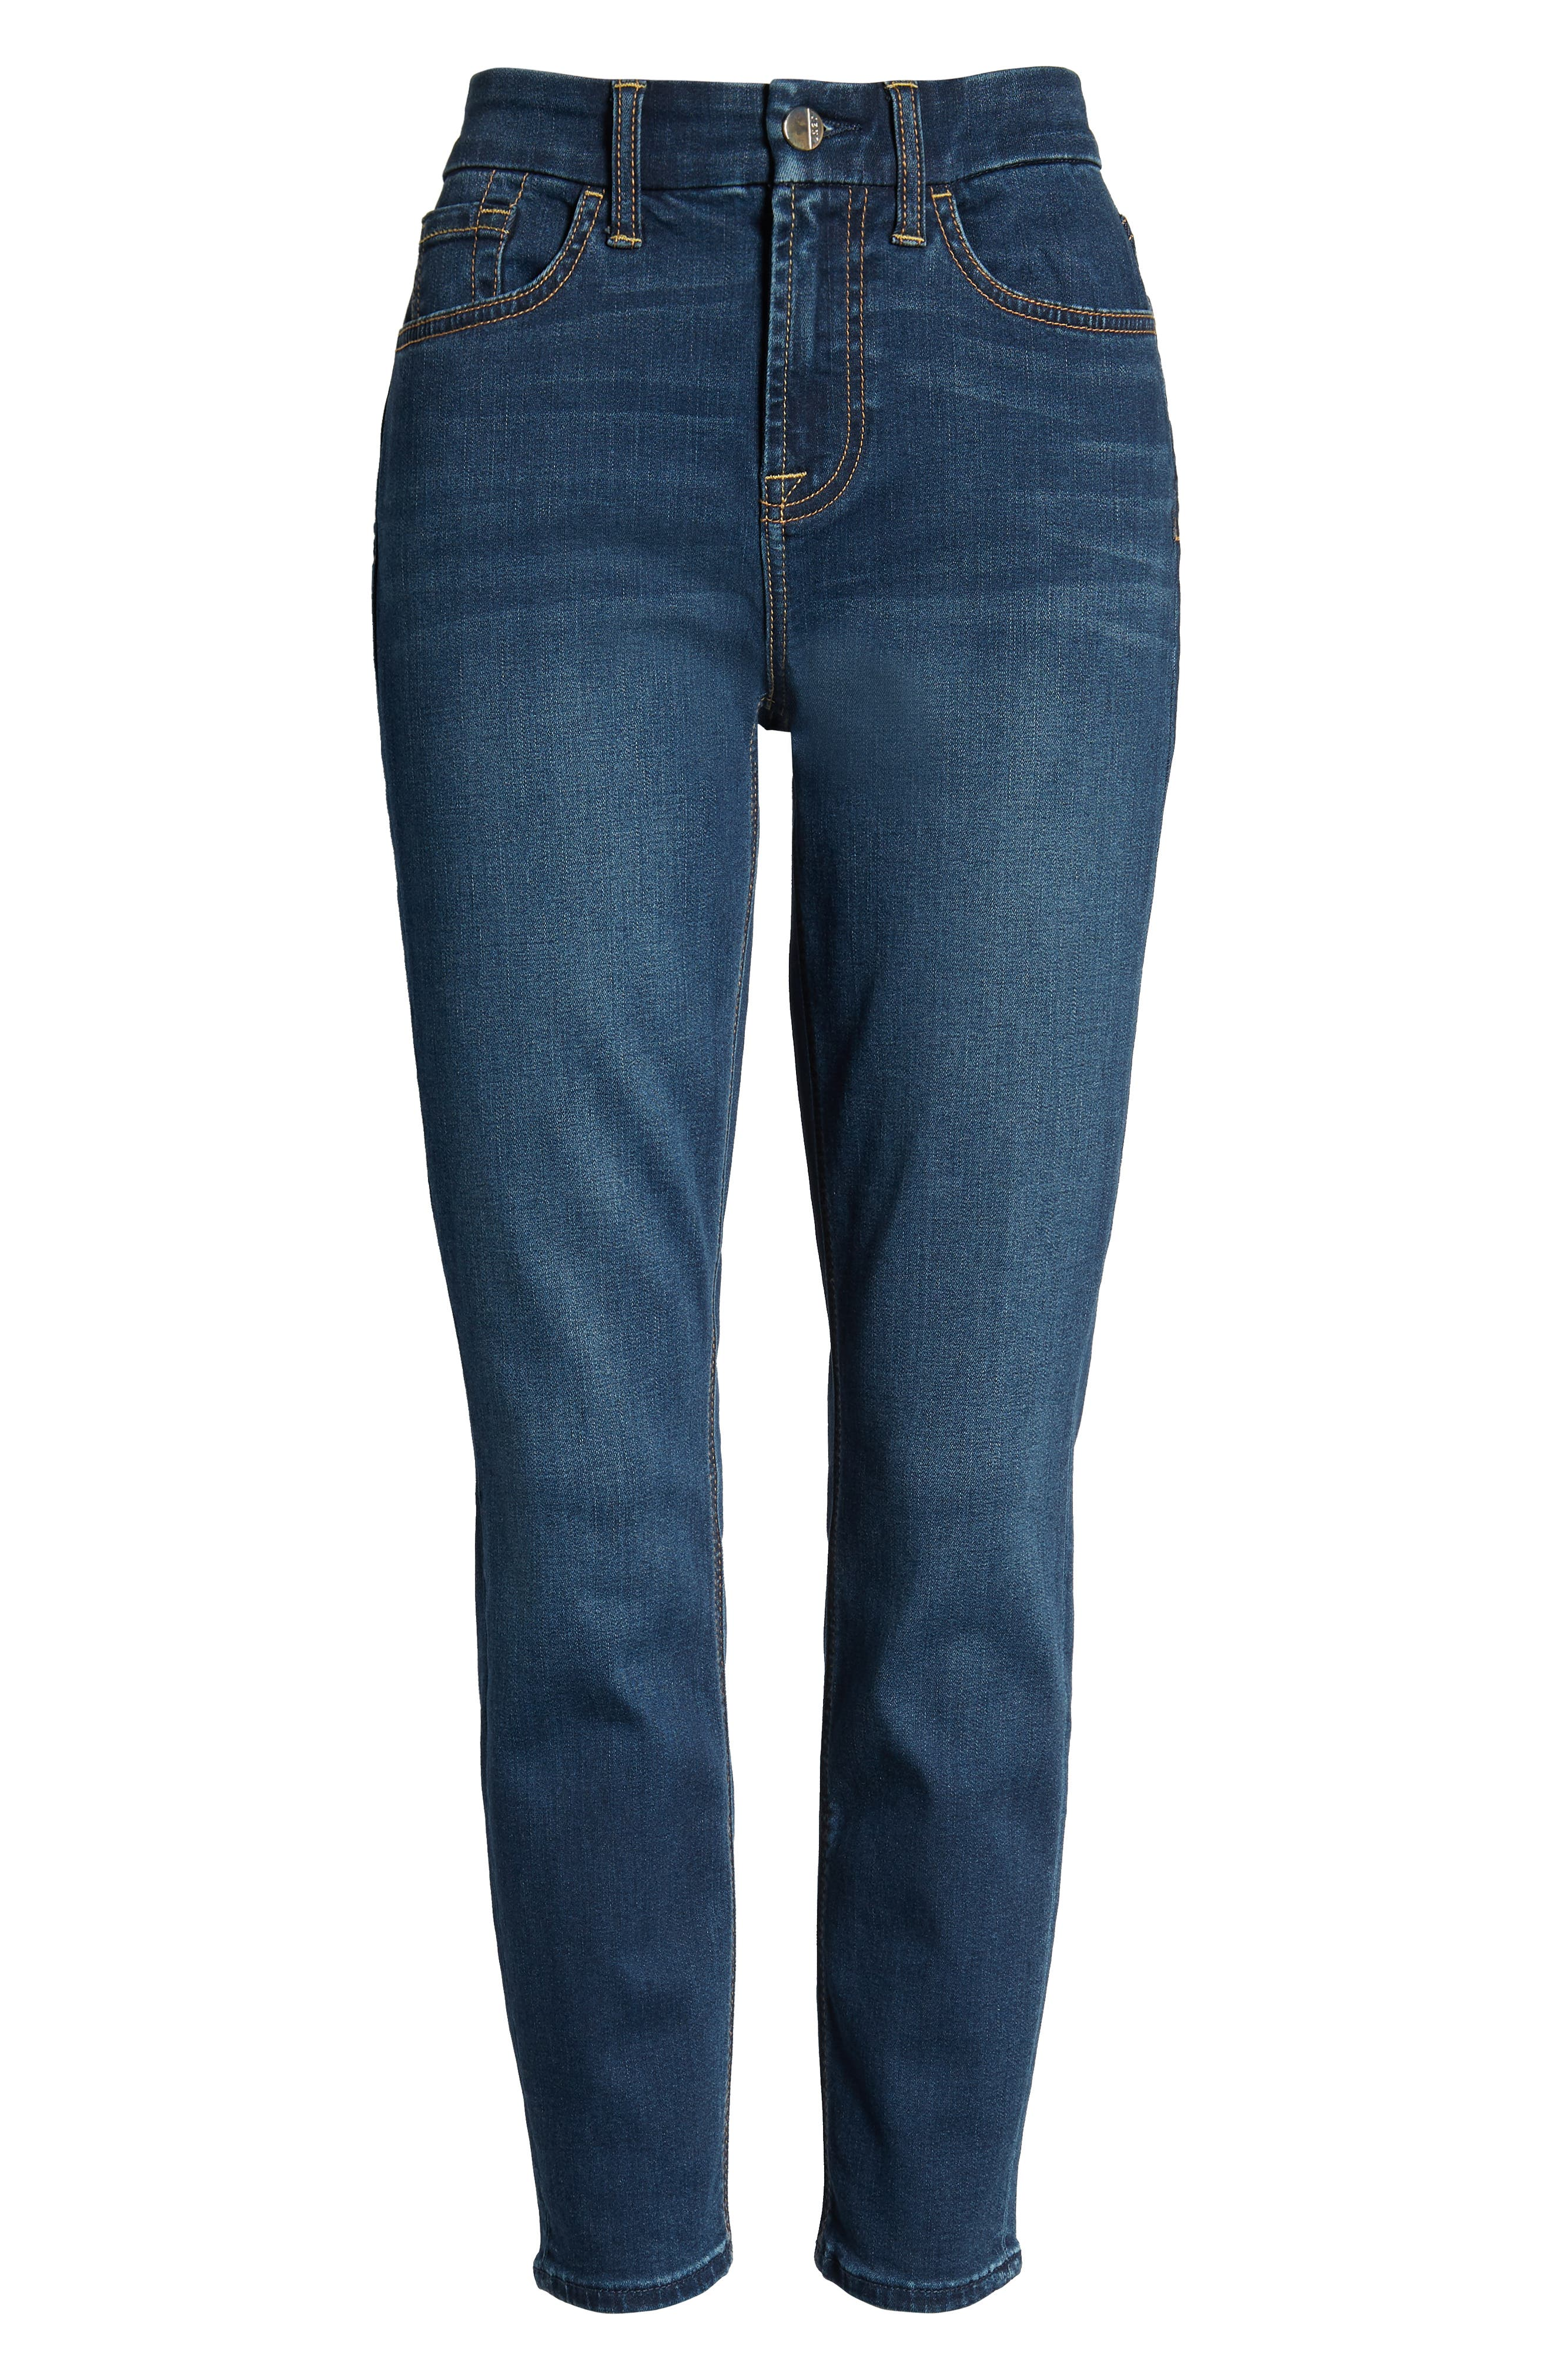 JEN7 BY 7 FOR ALL MANKIND, Ankle Skinny Jeans, Alternate thumbnail 7, color, 405